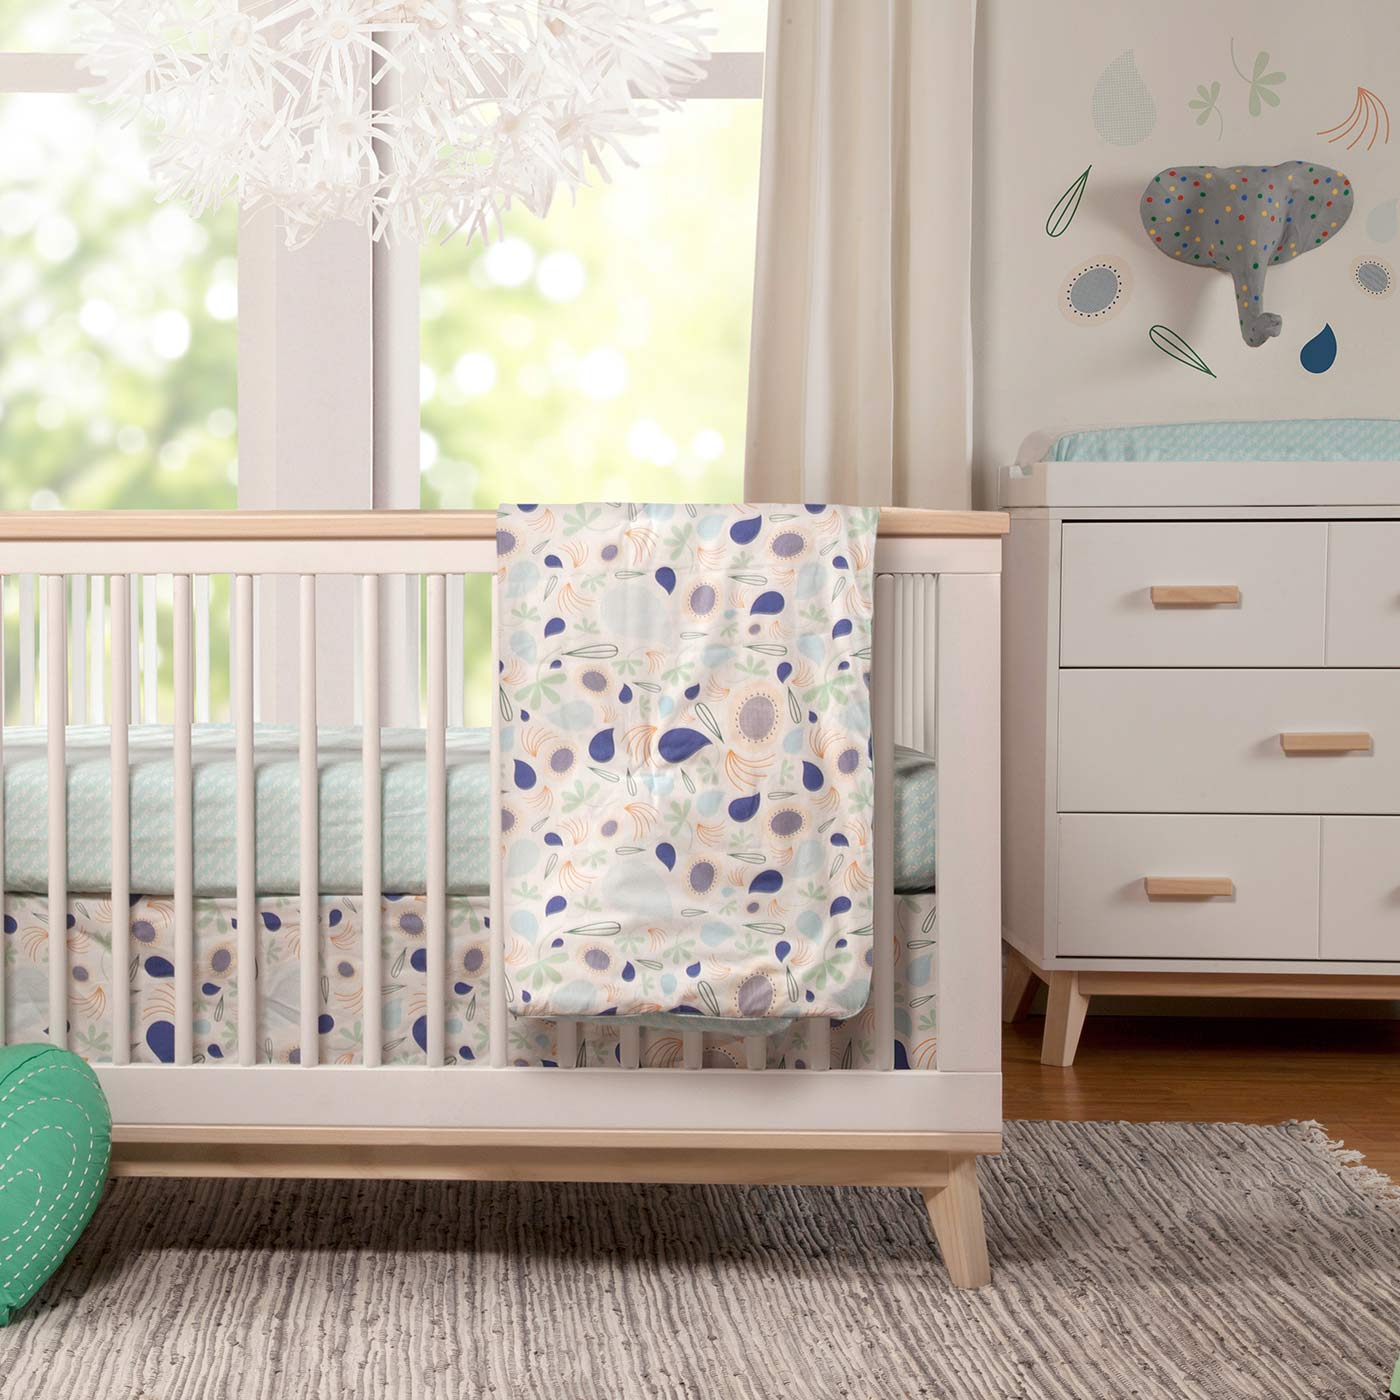 Unisex Crib Bedding Ideas: Starting Before You Know